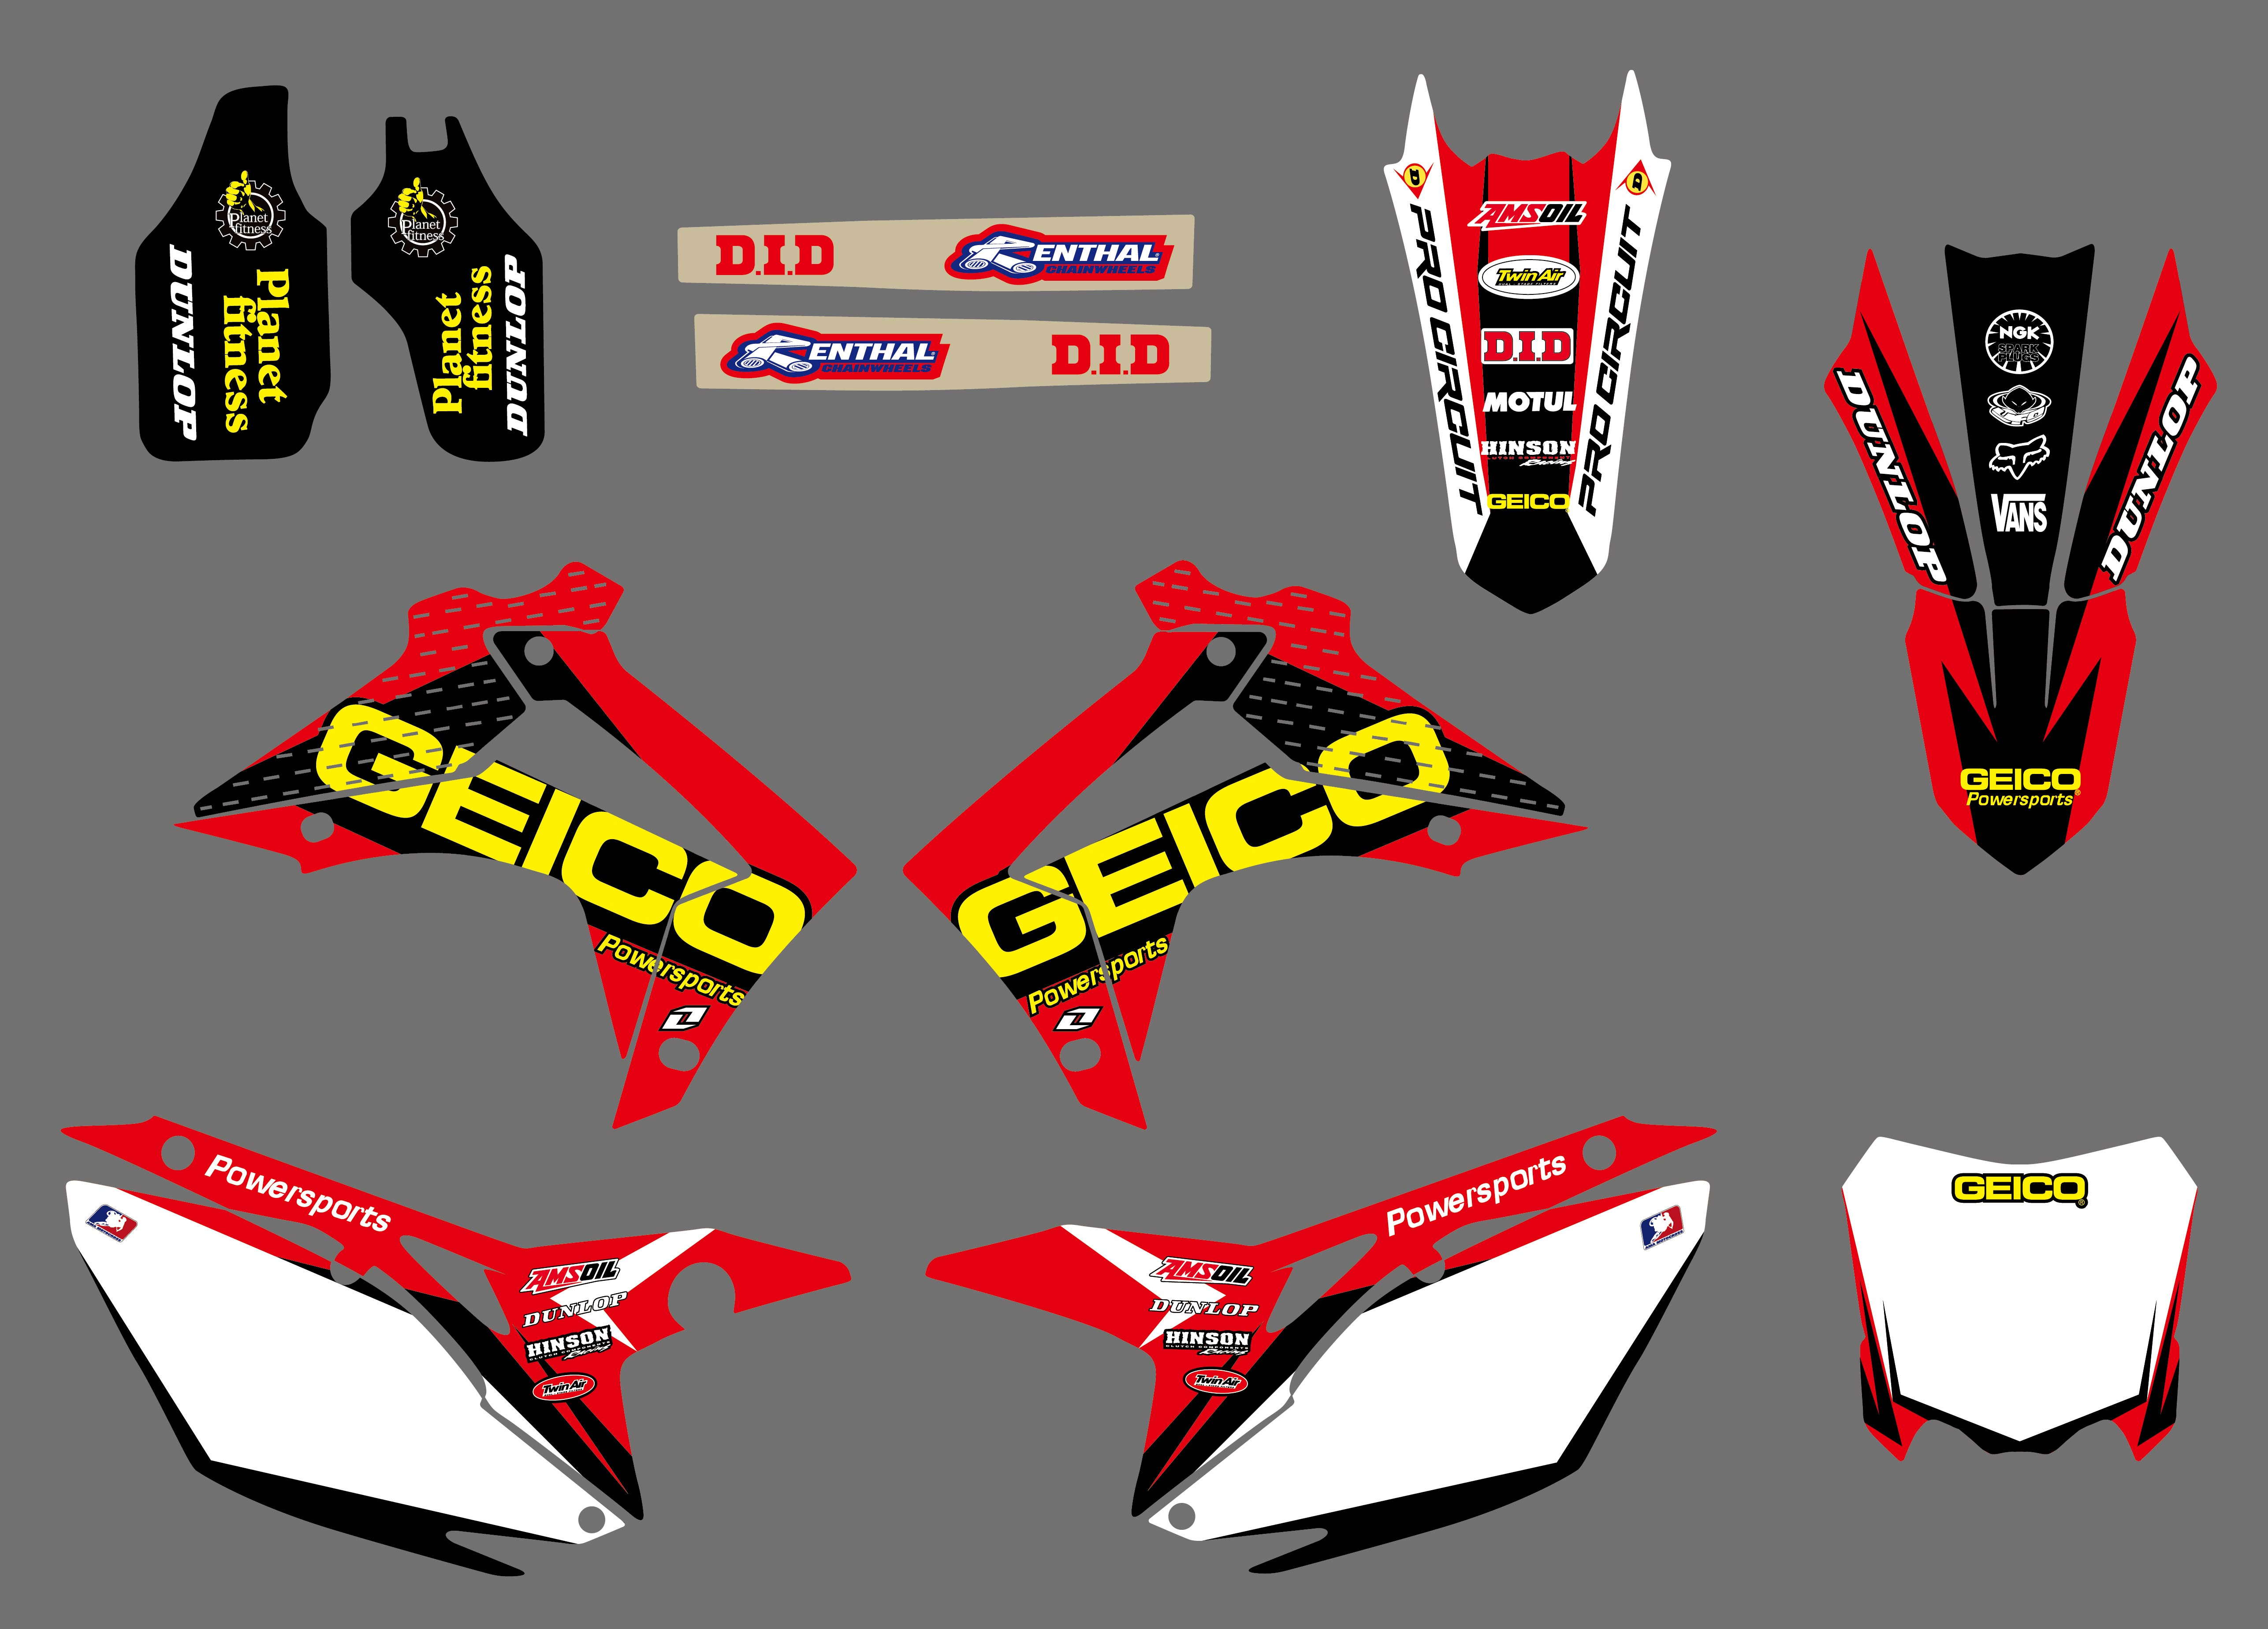 20+ Crf450r Decals Pictures and Ideas on Weric